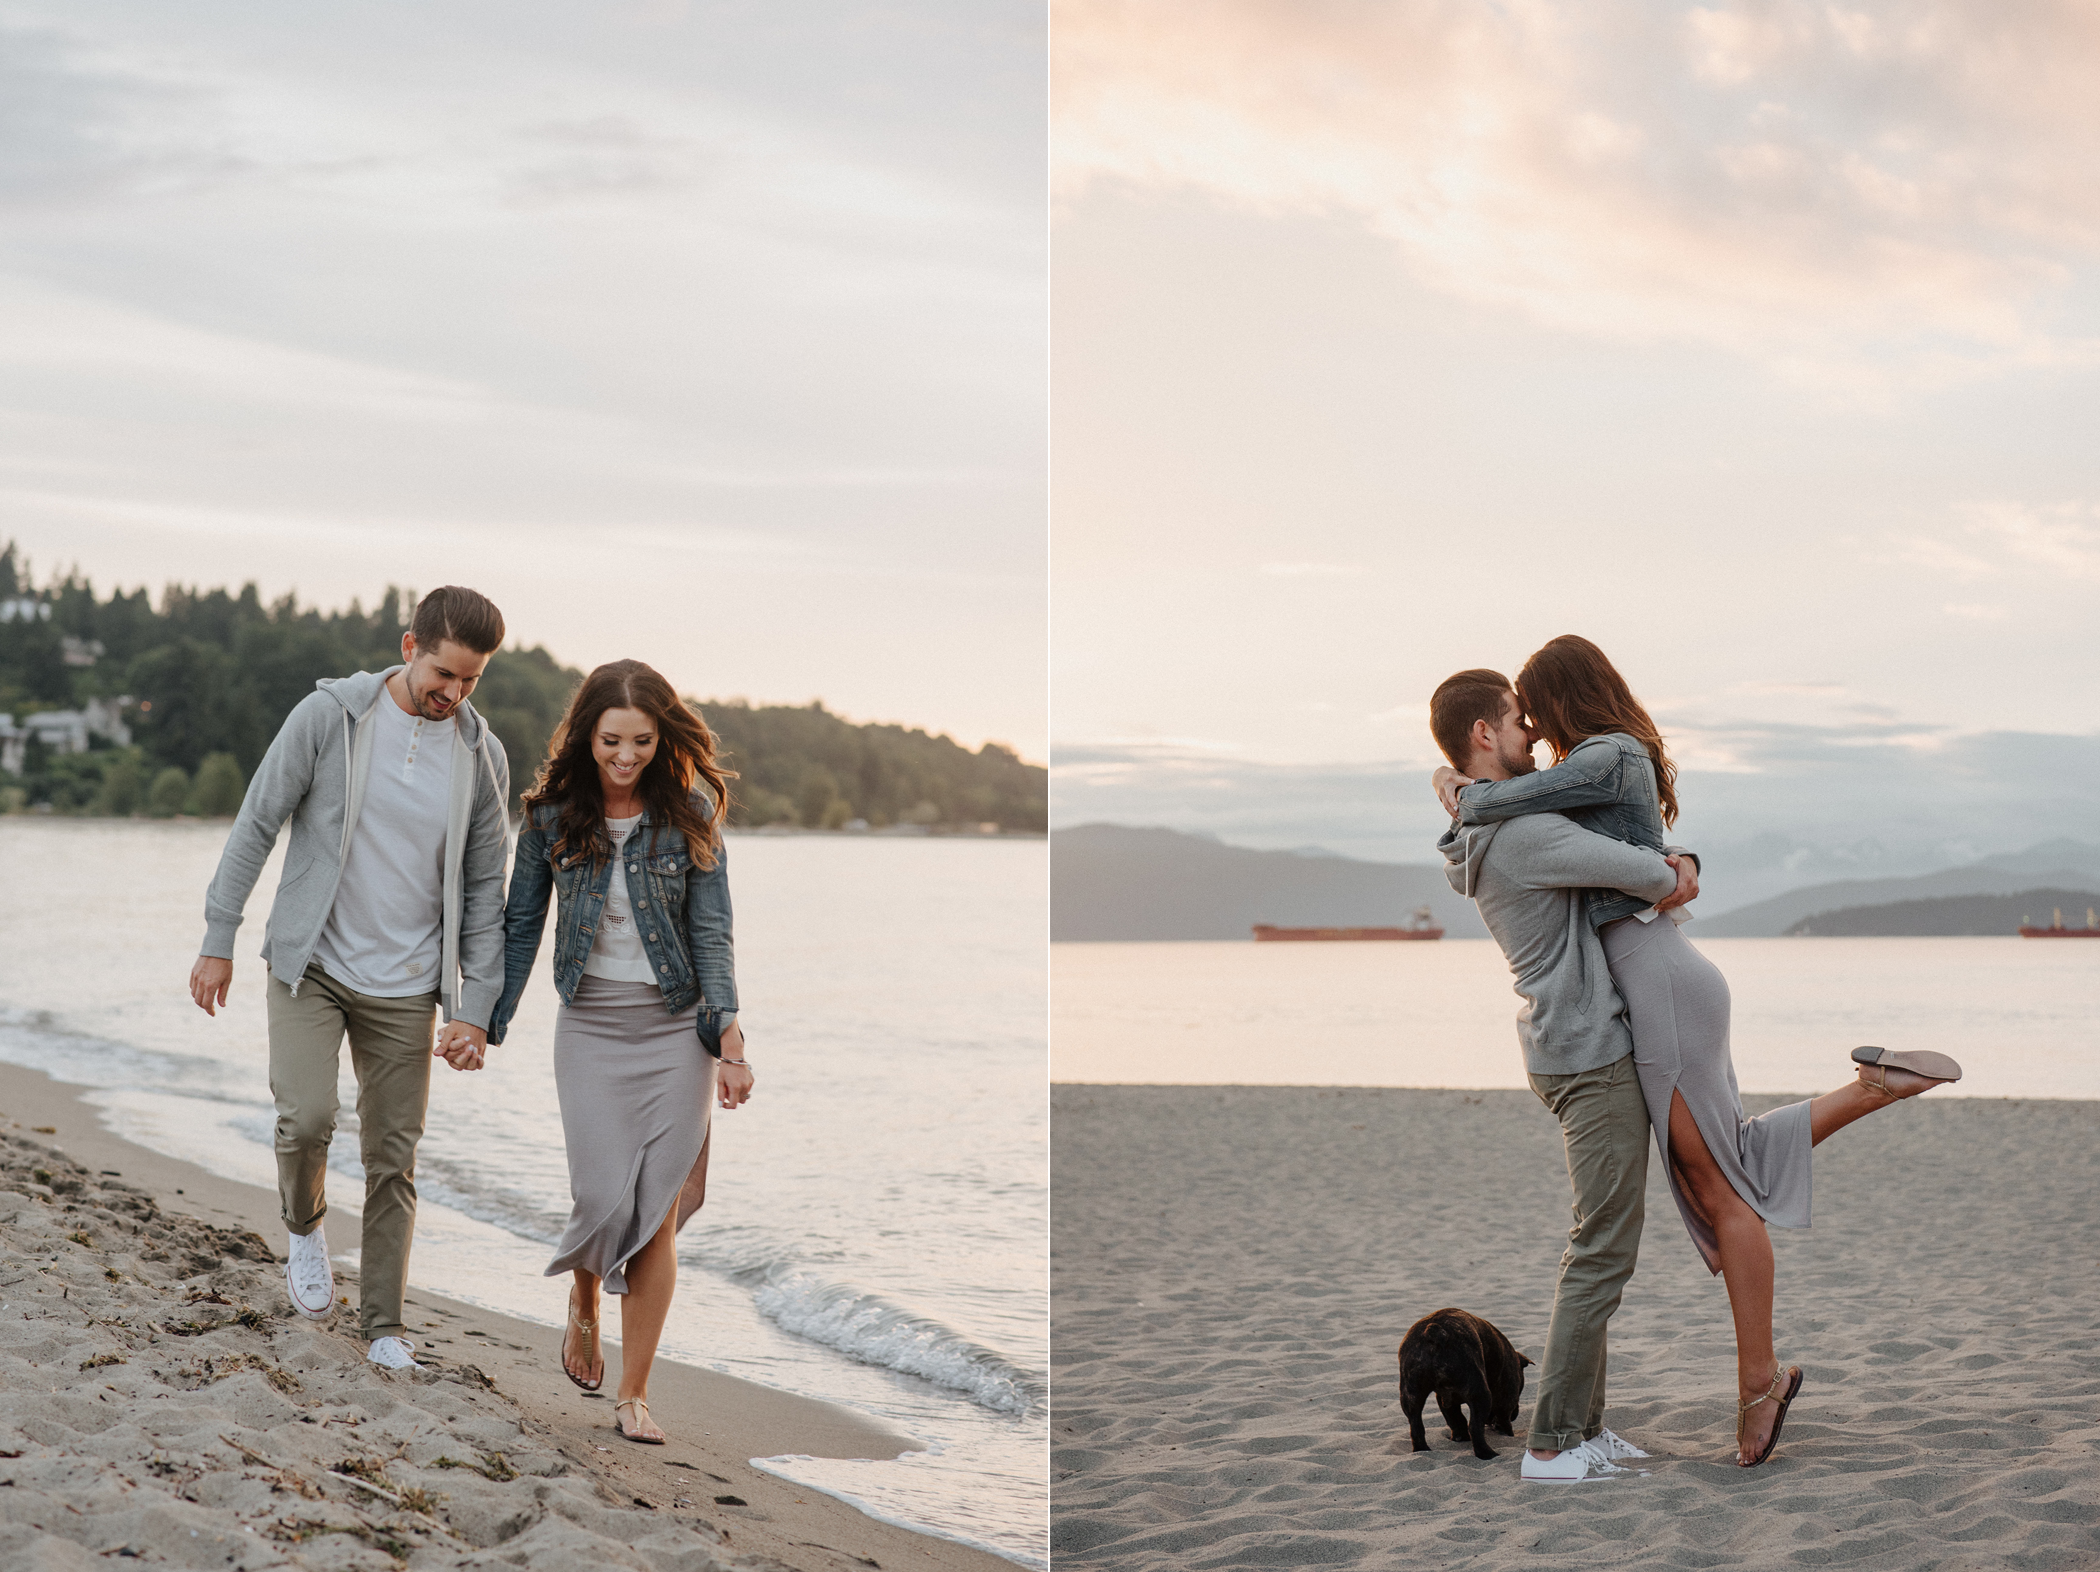 021-kaoverii-silva-LA-prewedding-vancouver-photography.png